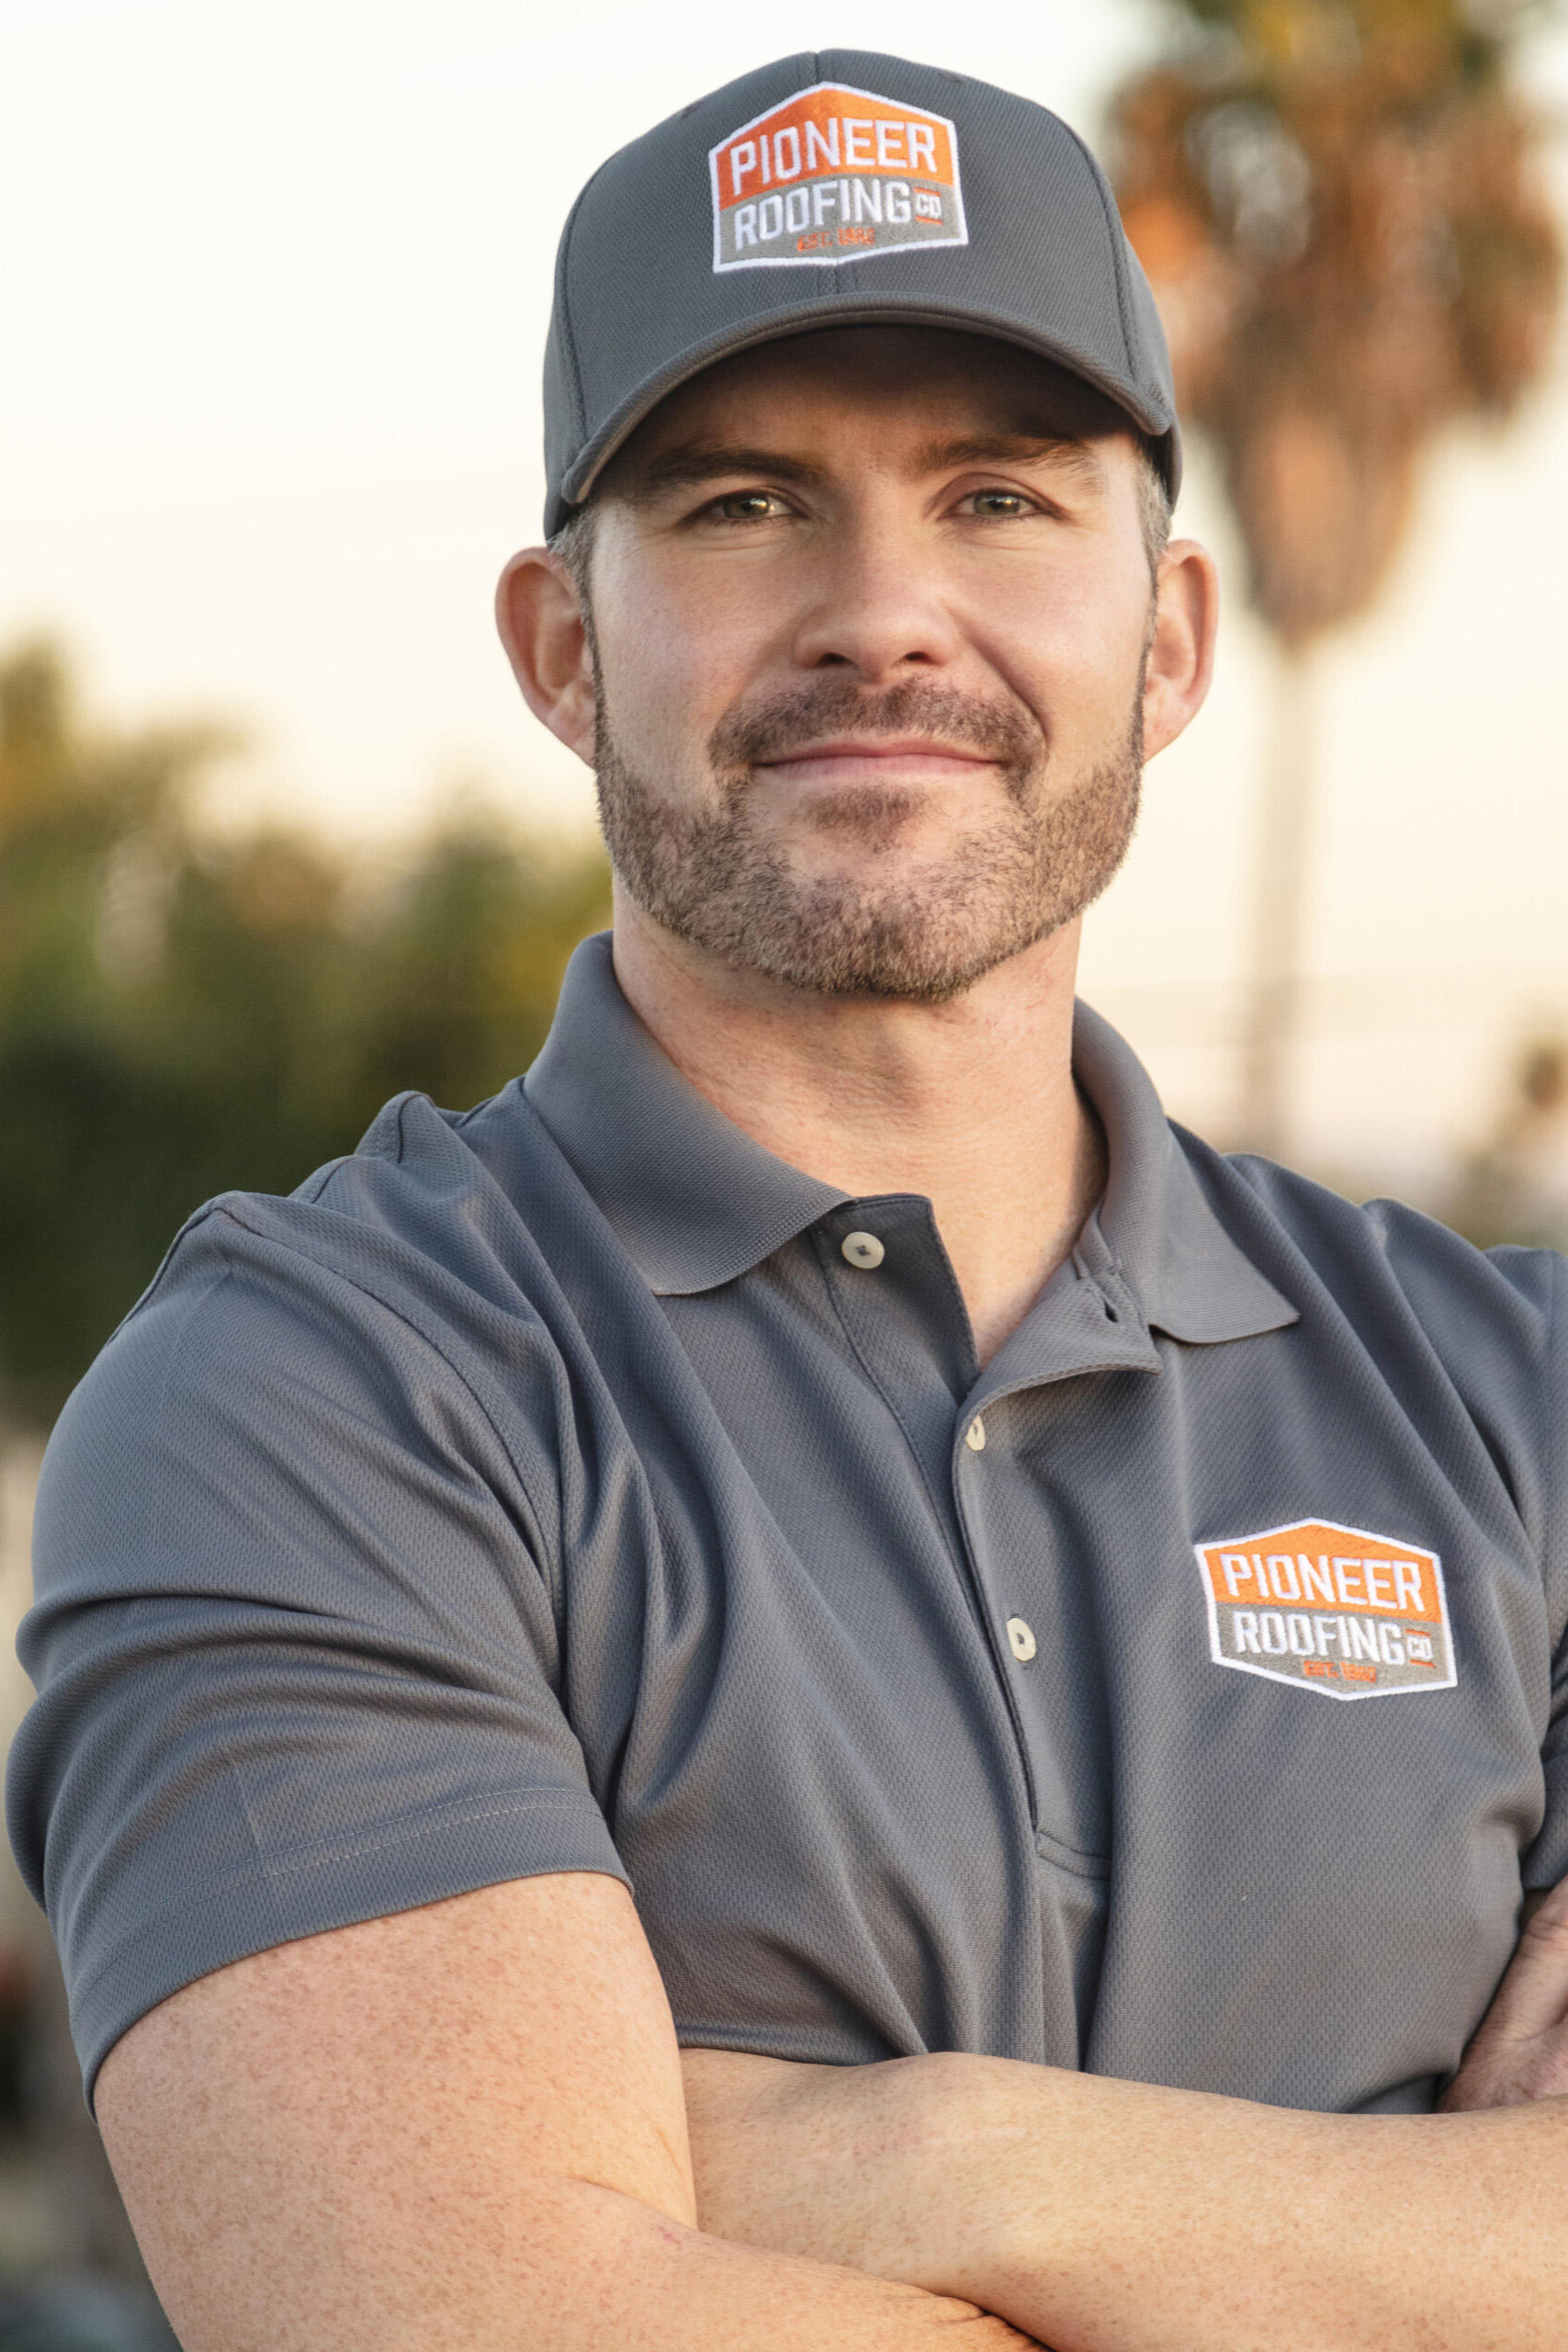 Spencer Stout Owner of Pioneer Roofing